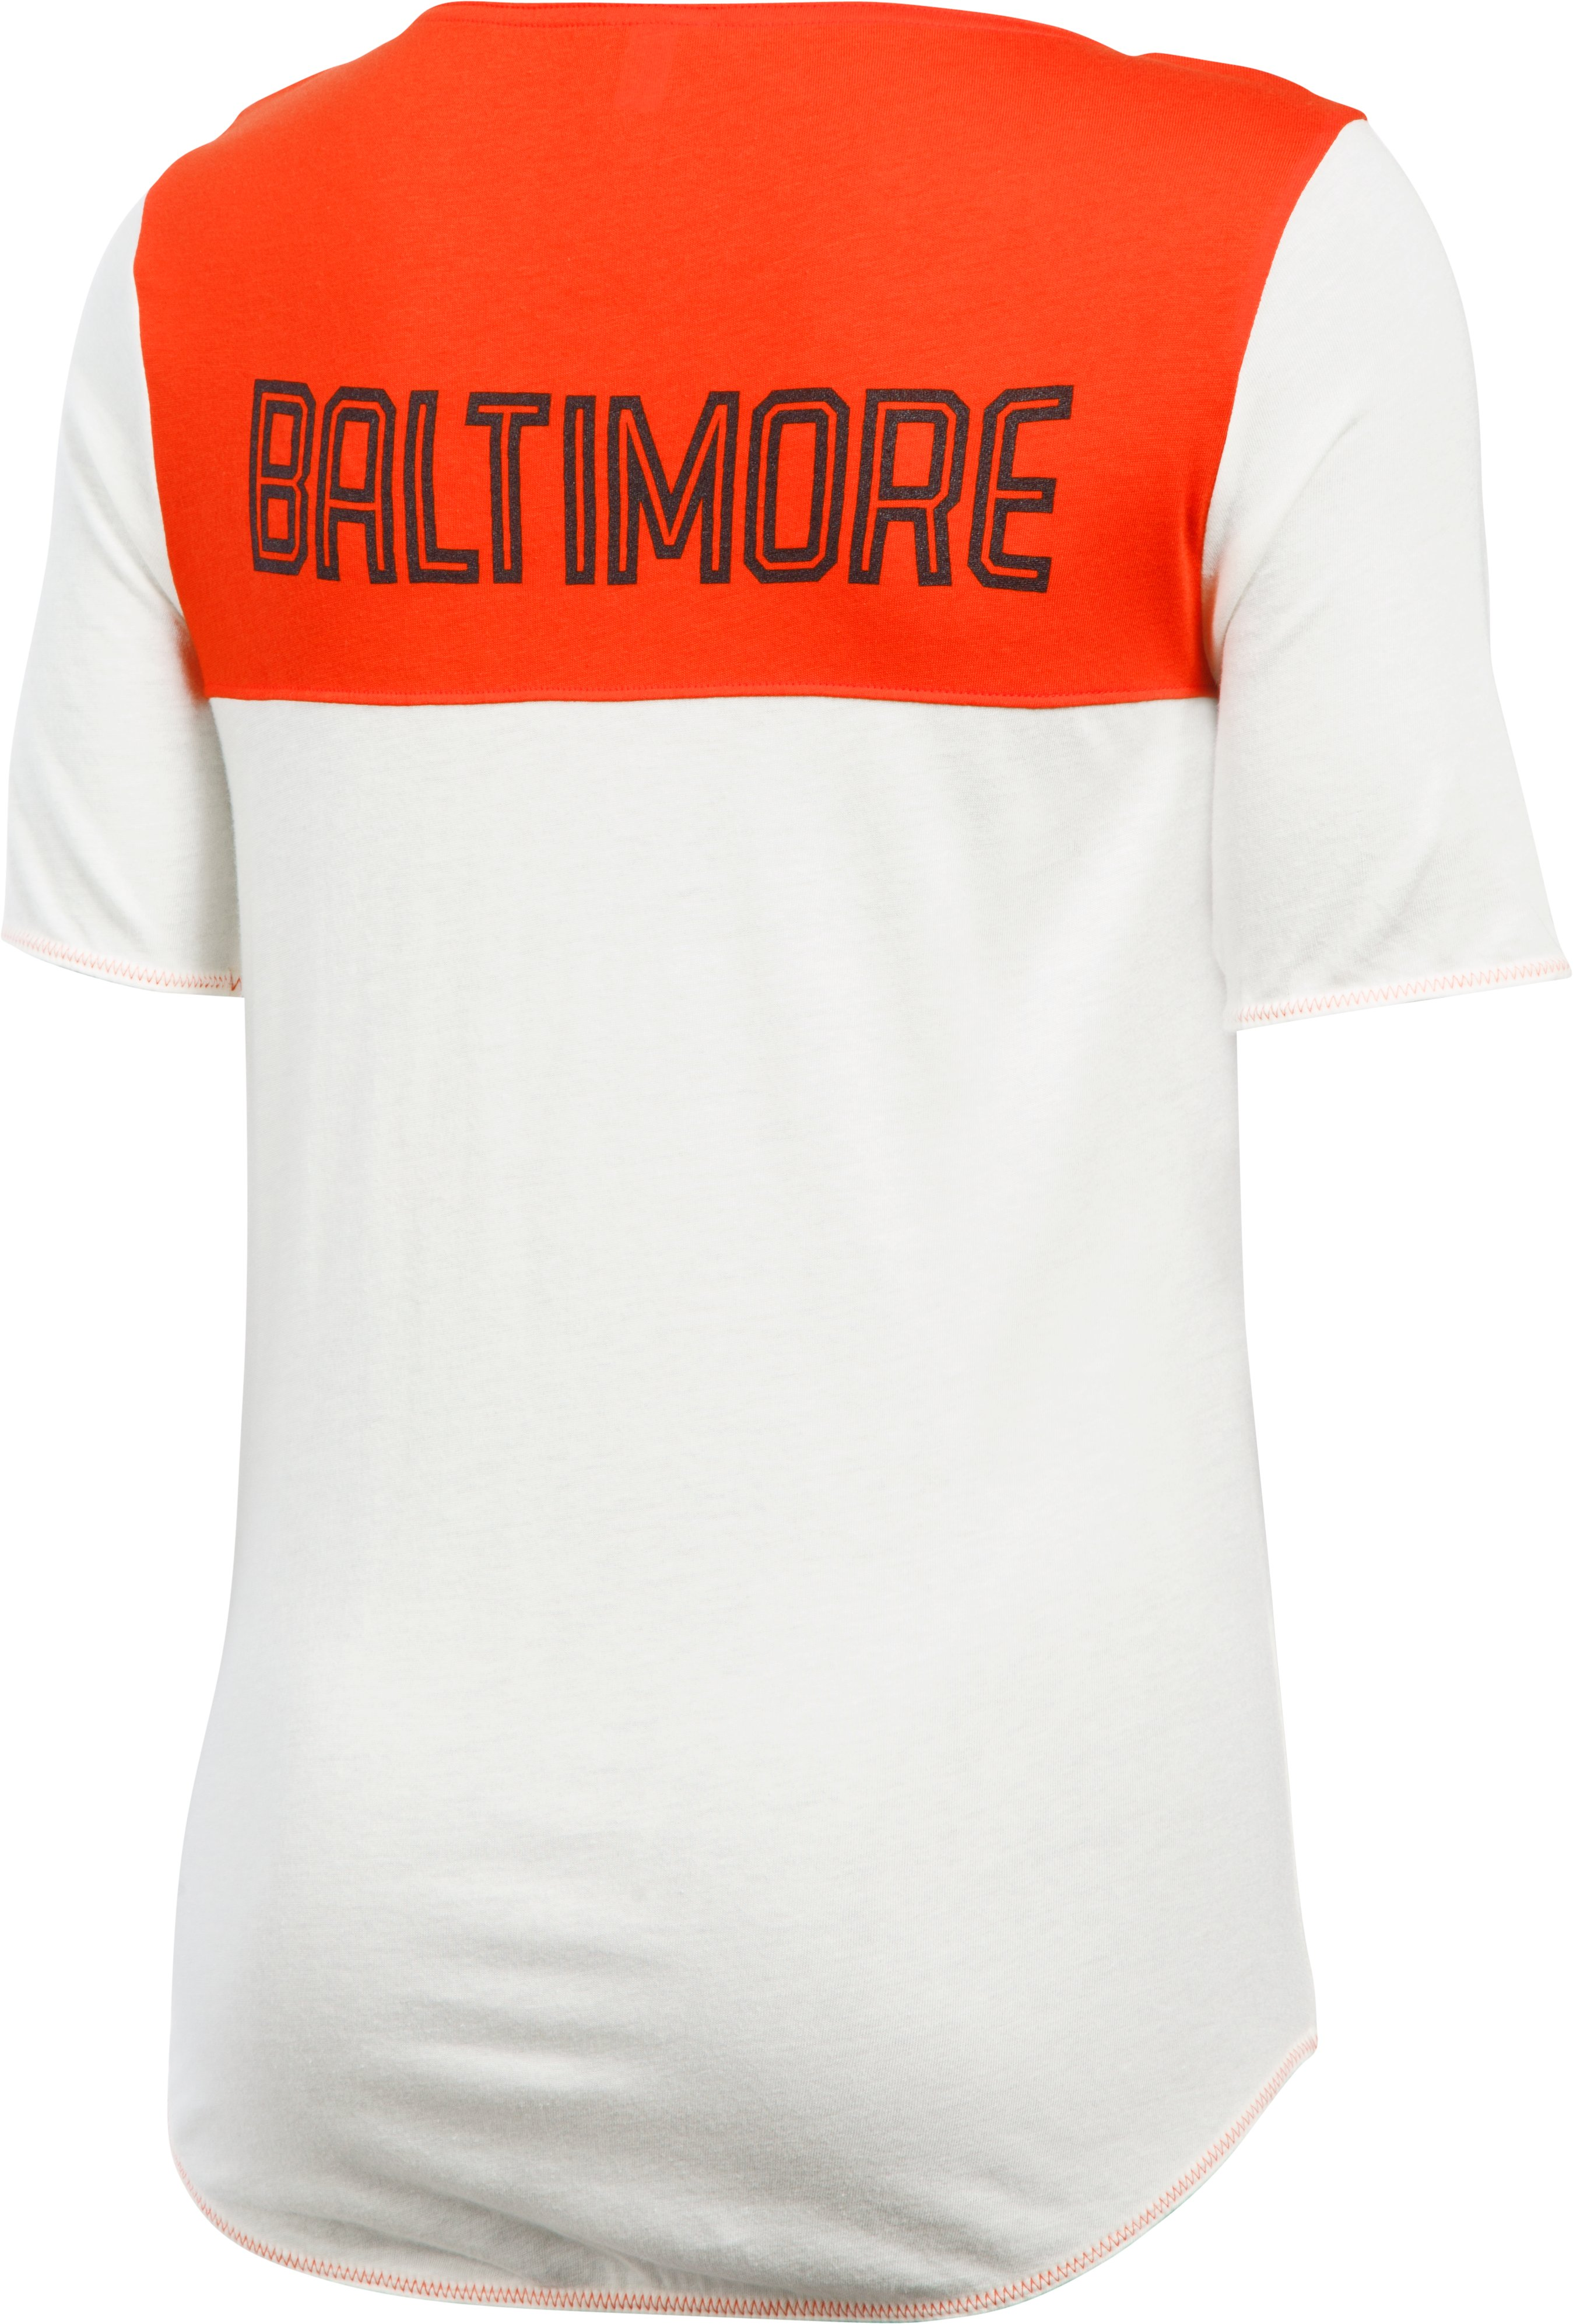 Women's Baltimore Orioles Vintage Shirzee, Dark Orange